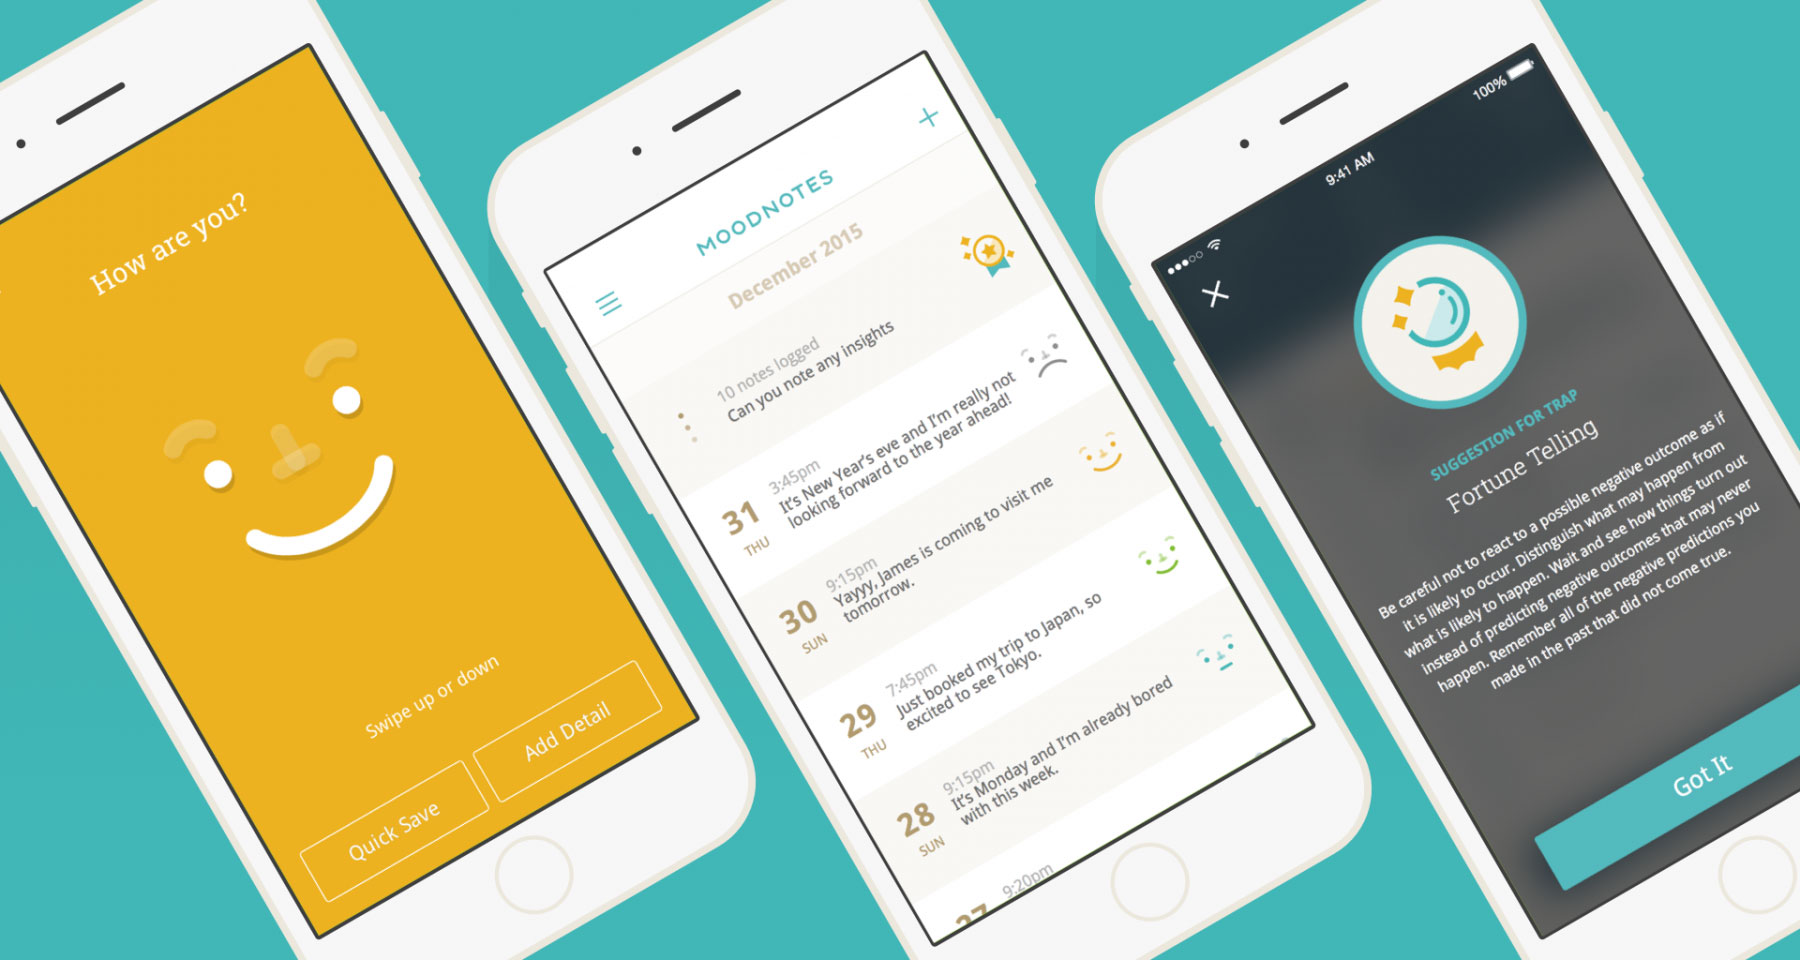 caseStudy-moodnotes-01